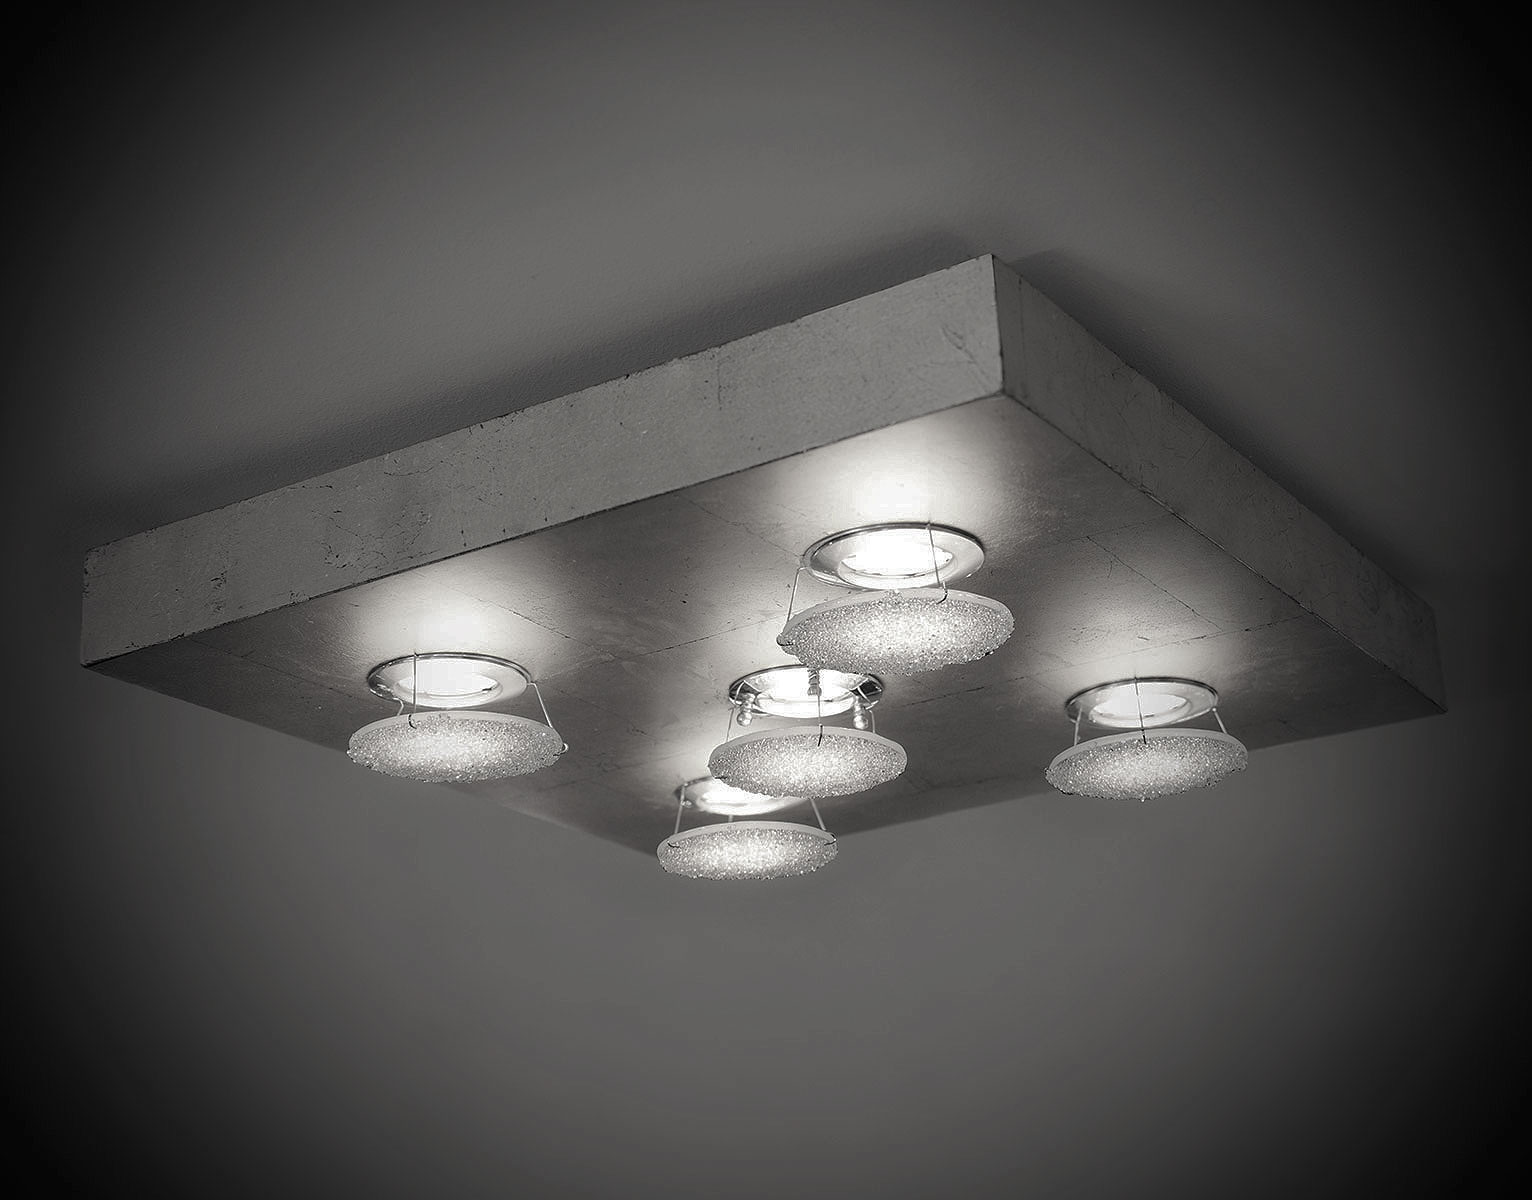 Light Source 5 - Ceiling Light fixture